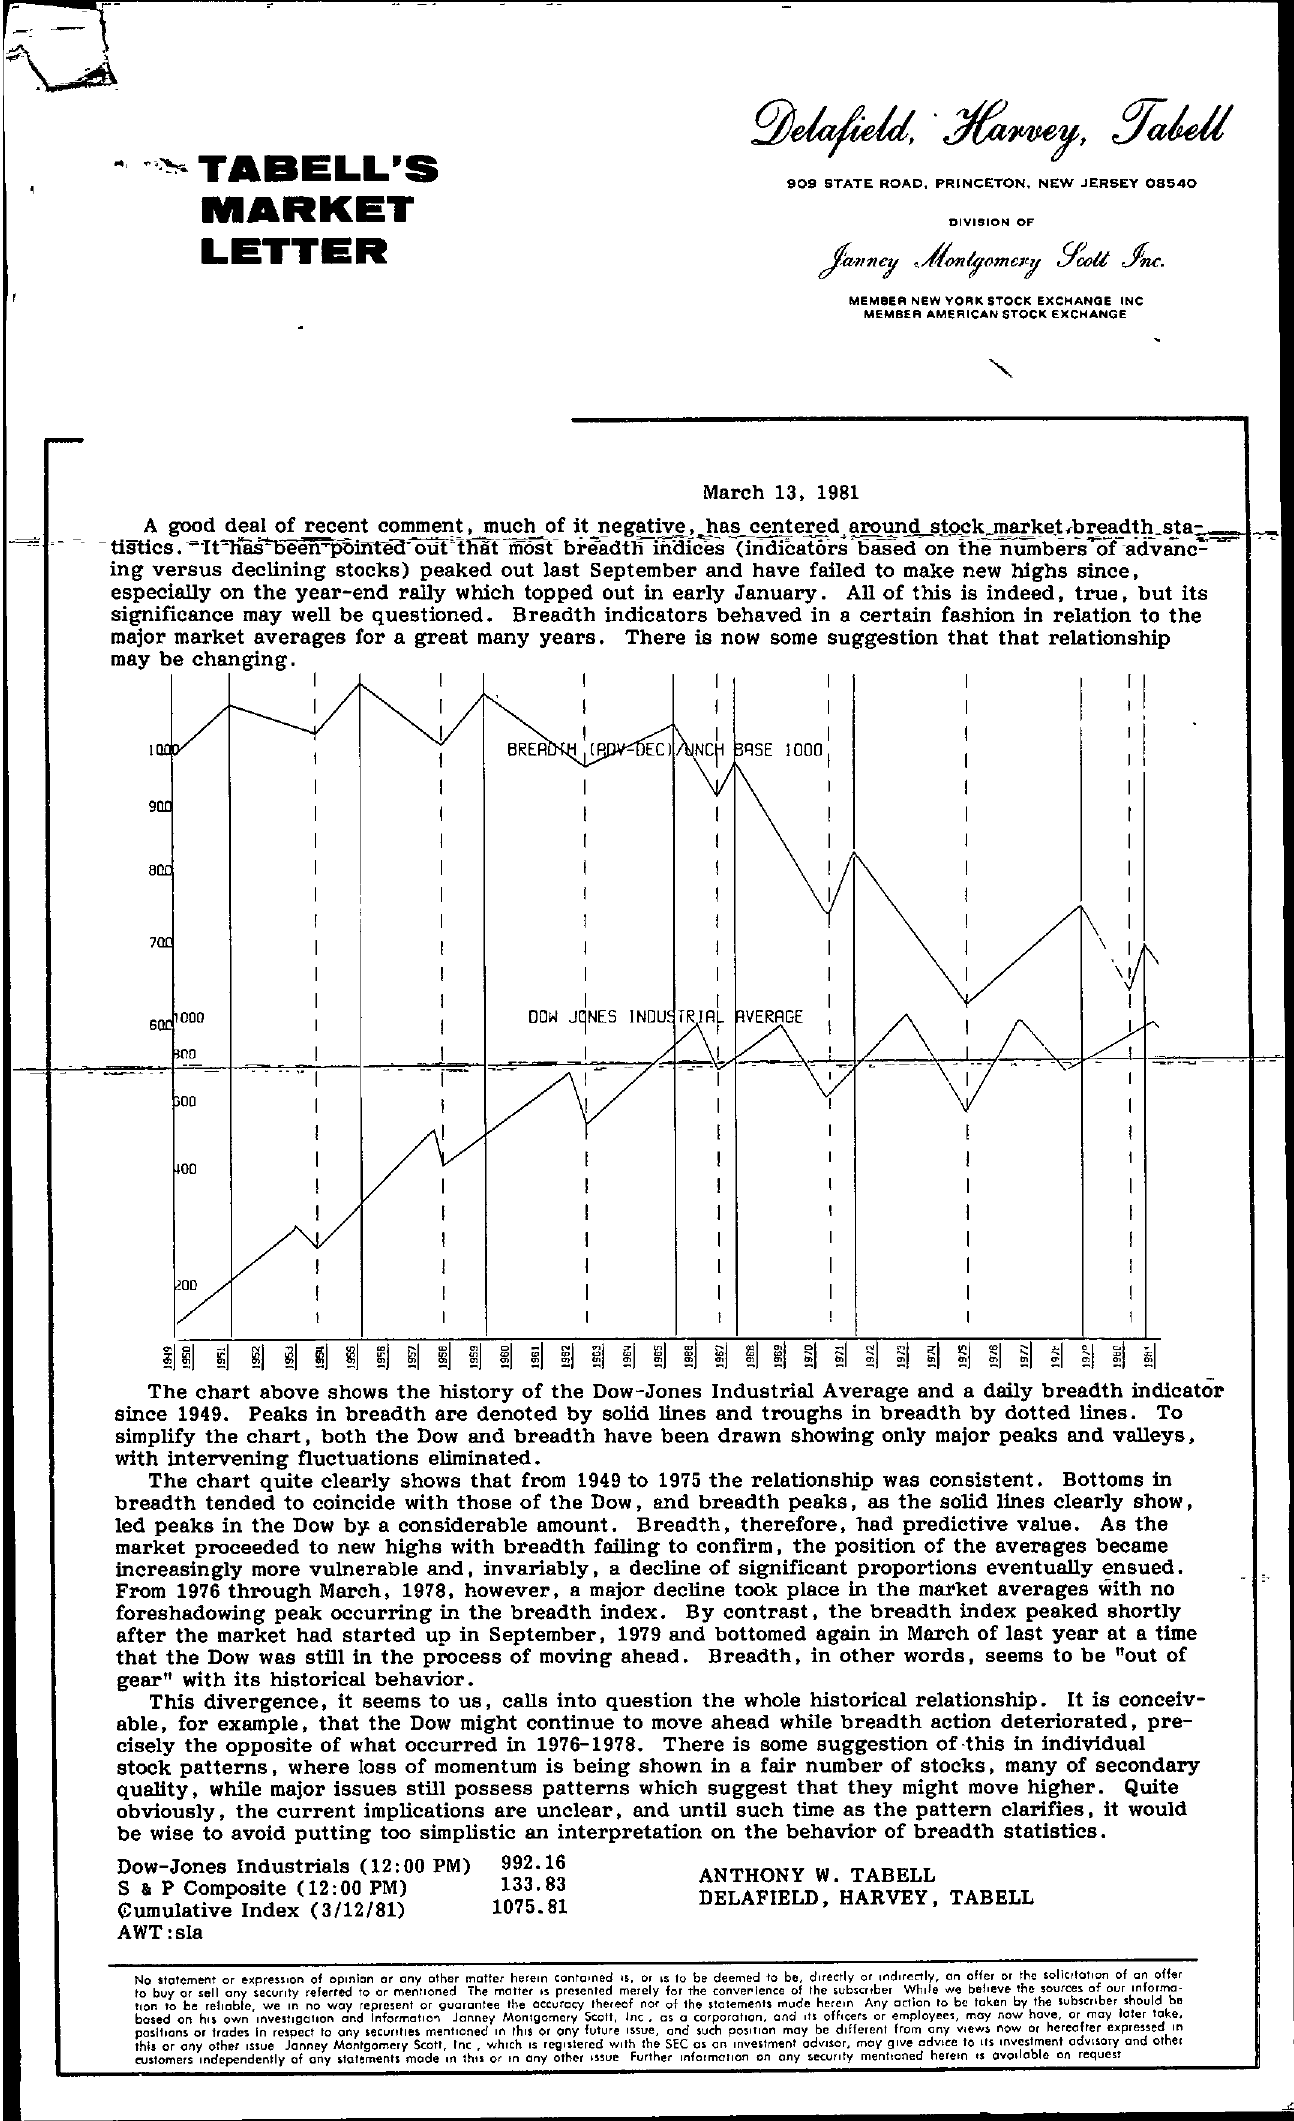 Tabell's Market Letter - March 13, 1981